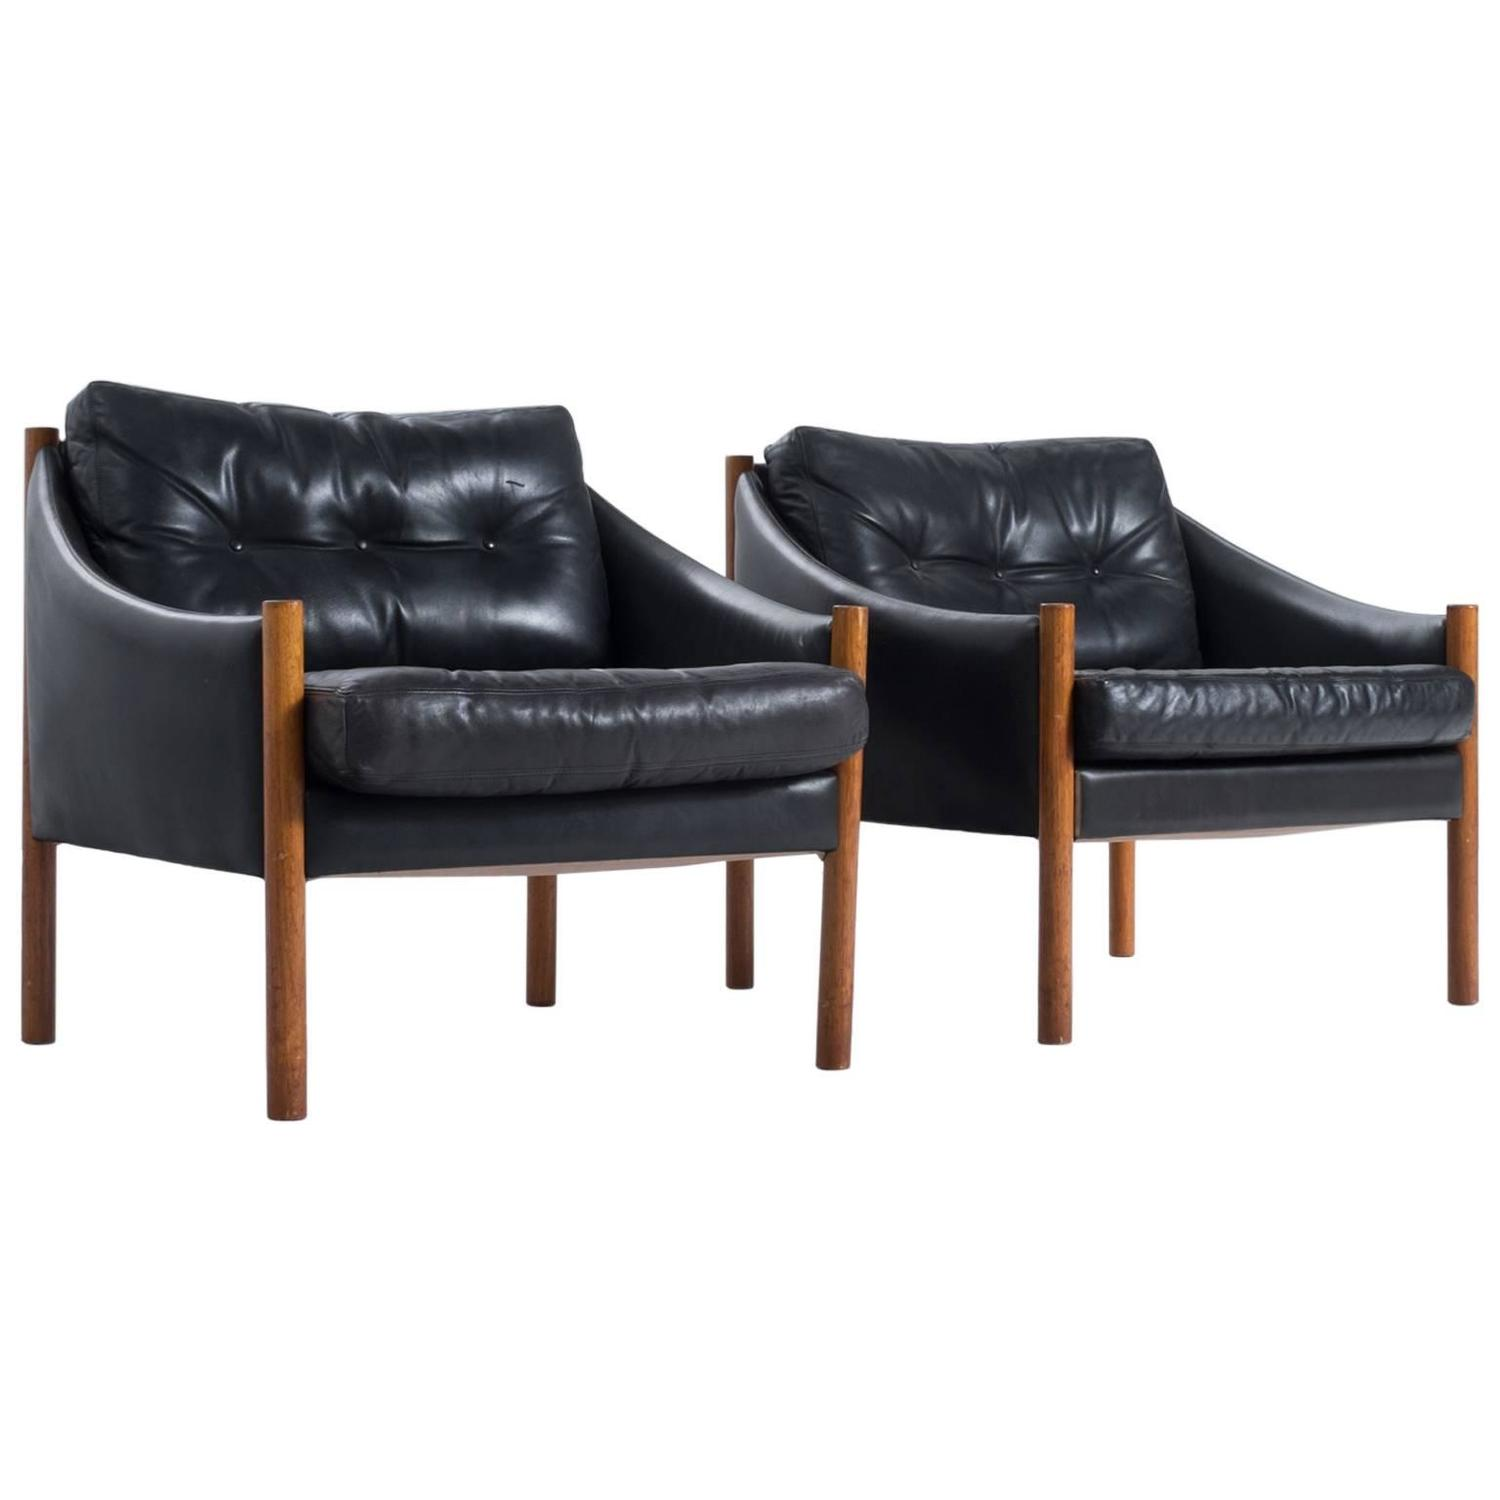 set of two easy chairs in black leather for sale at 1stdibs